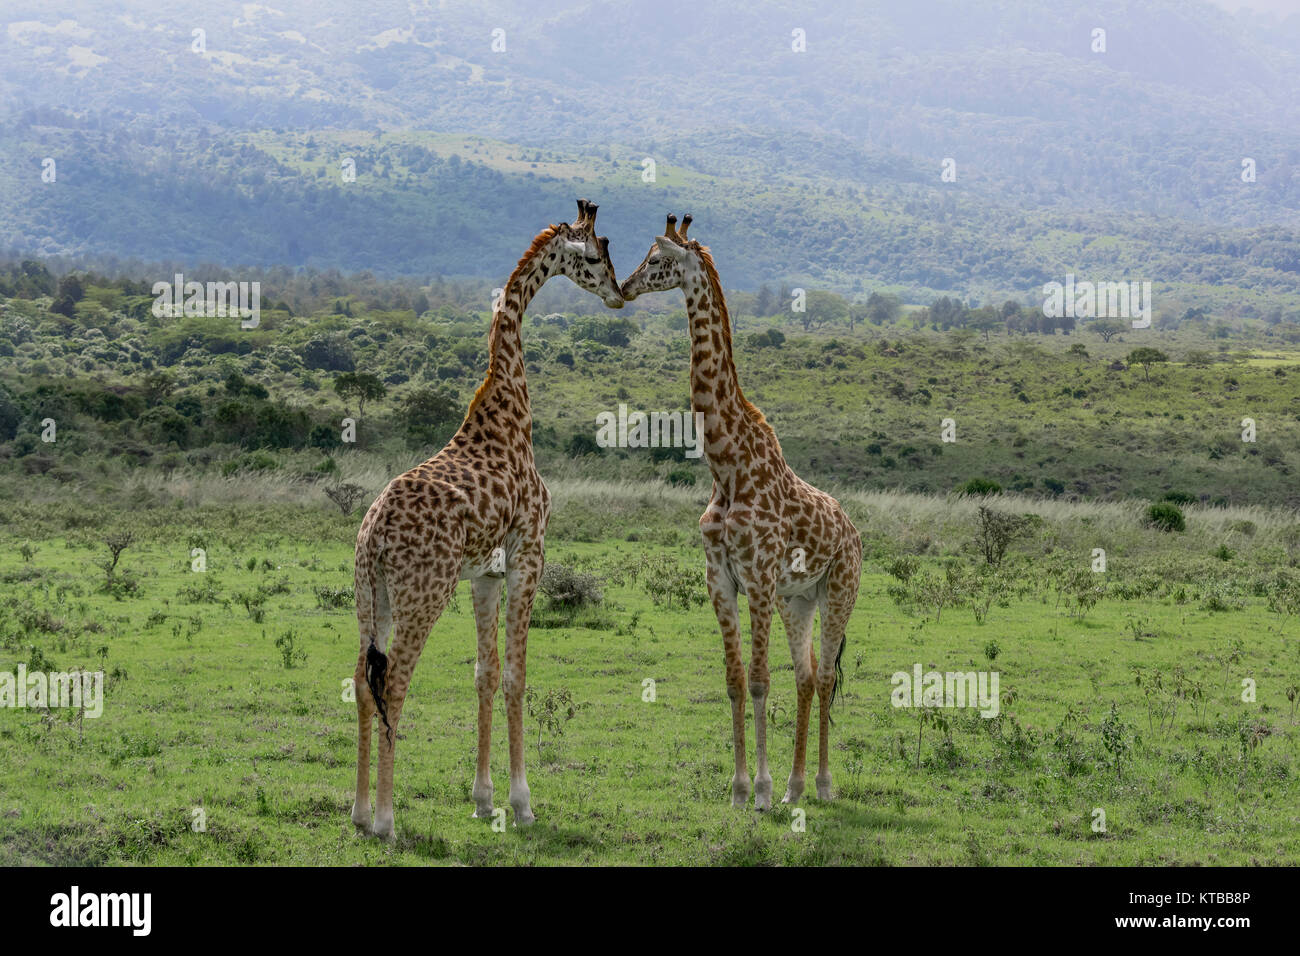 Two young Masai giraffes interacting together 1, near Mount Meru, Arusha NP, Tanzania - Stock Image